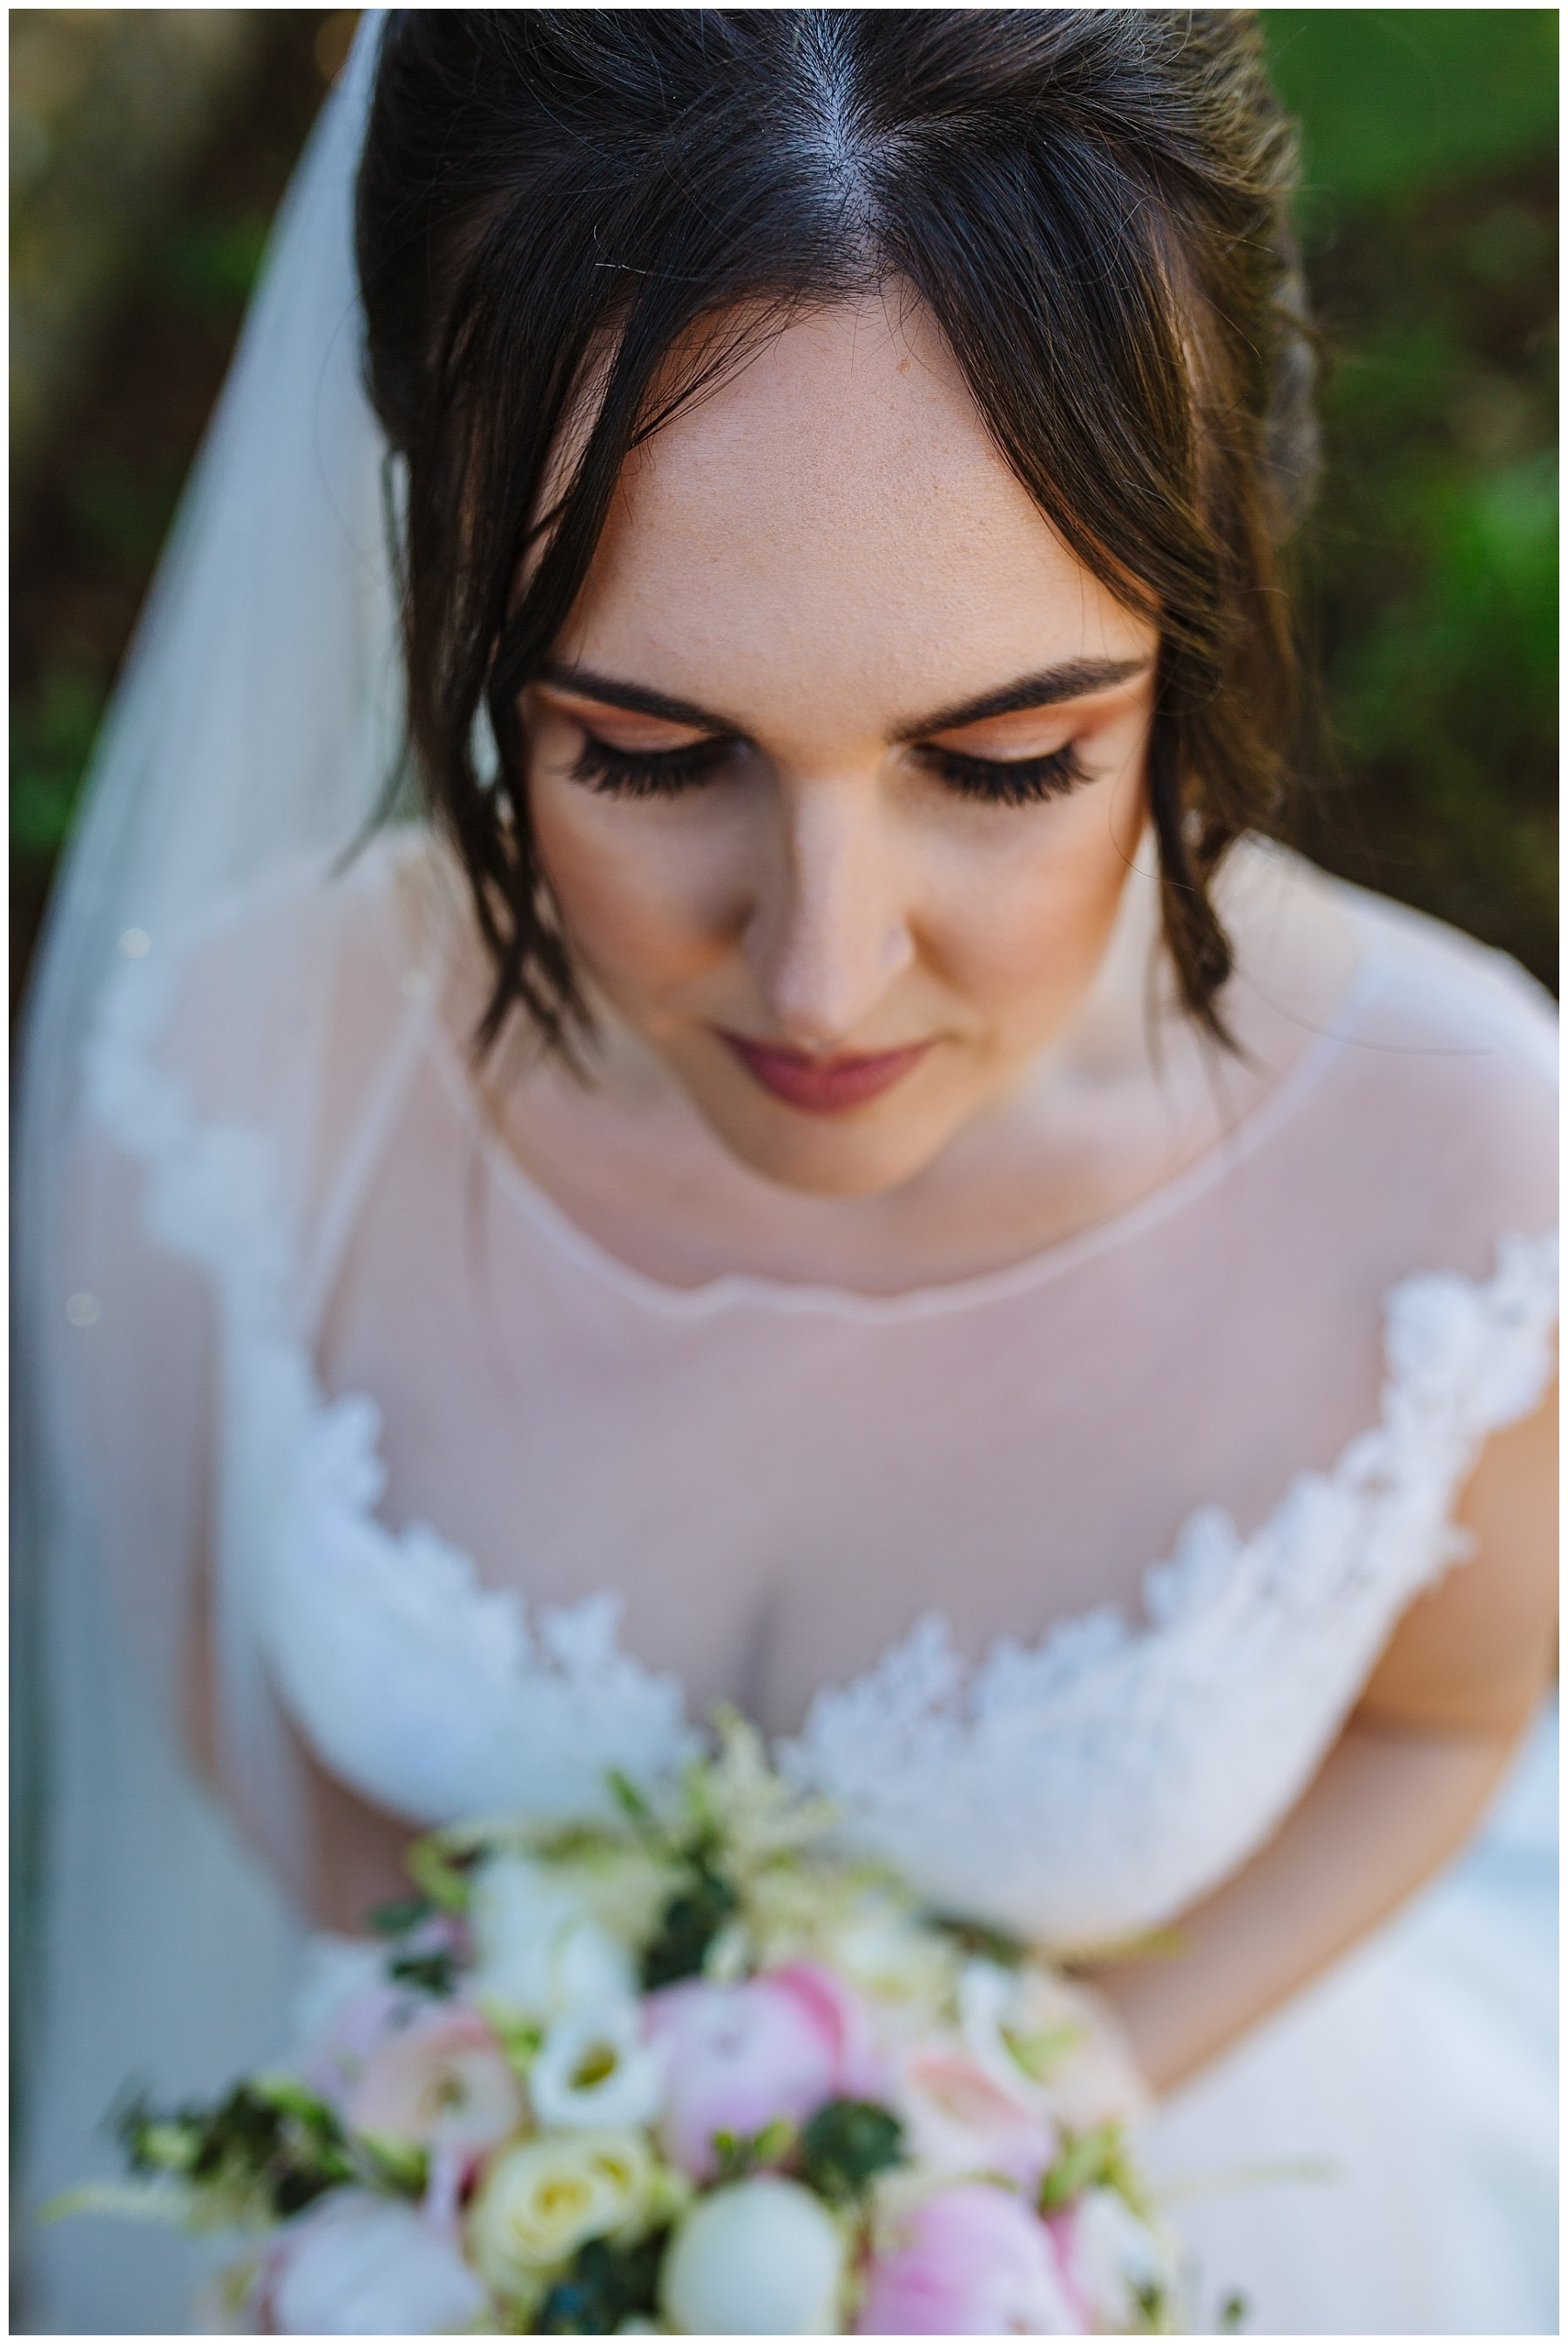 Bridal portrait showing hair and make up and flowers